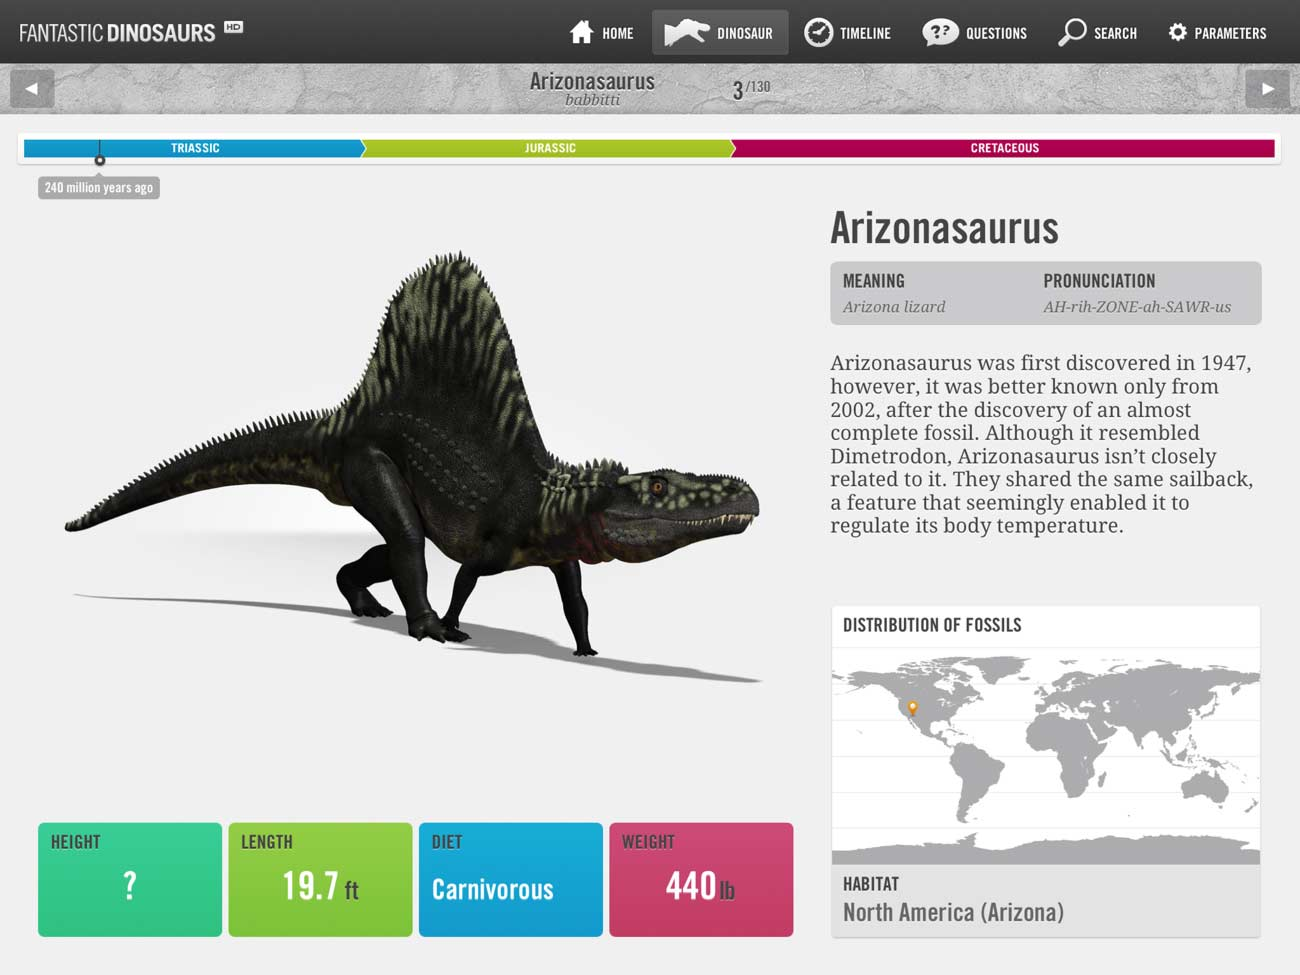 The Fantastic Dinosaurs app includes detailed info and pictures of 130 creatures.